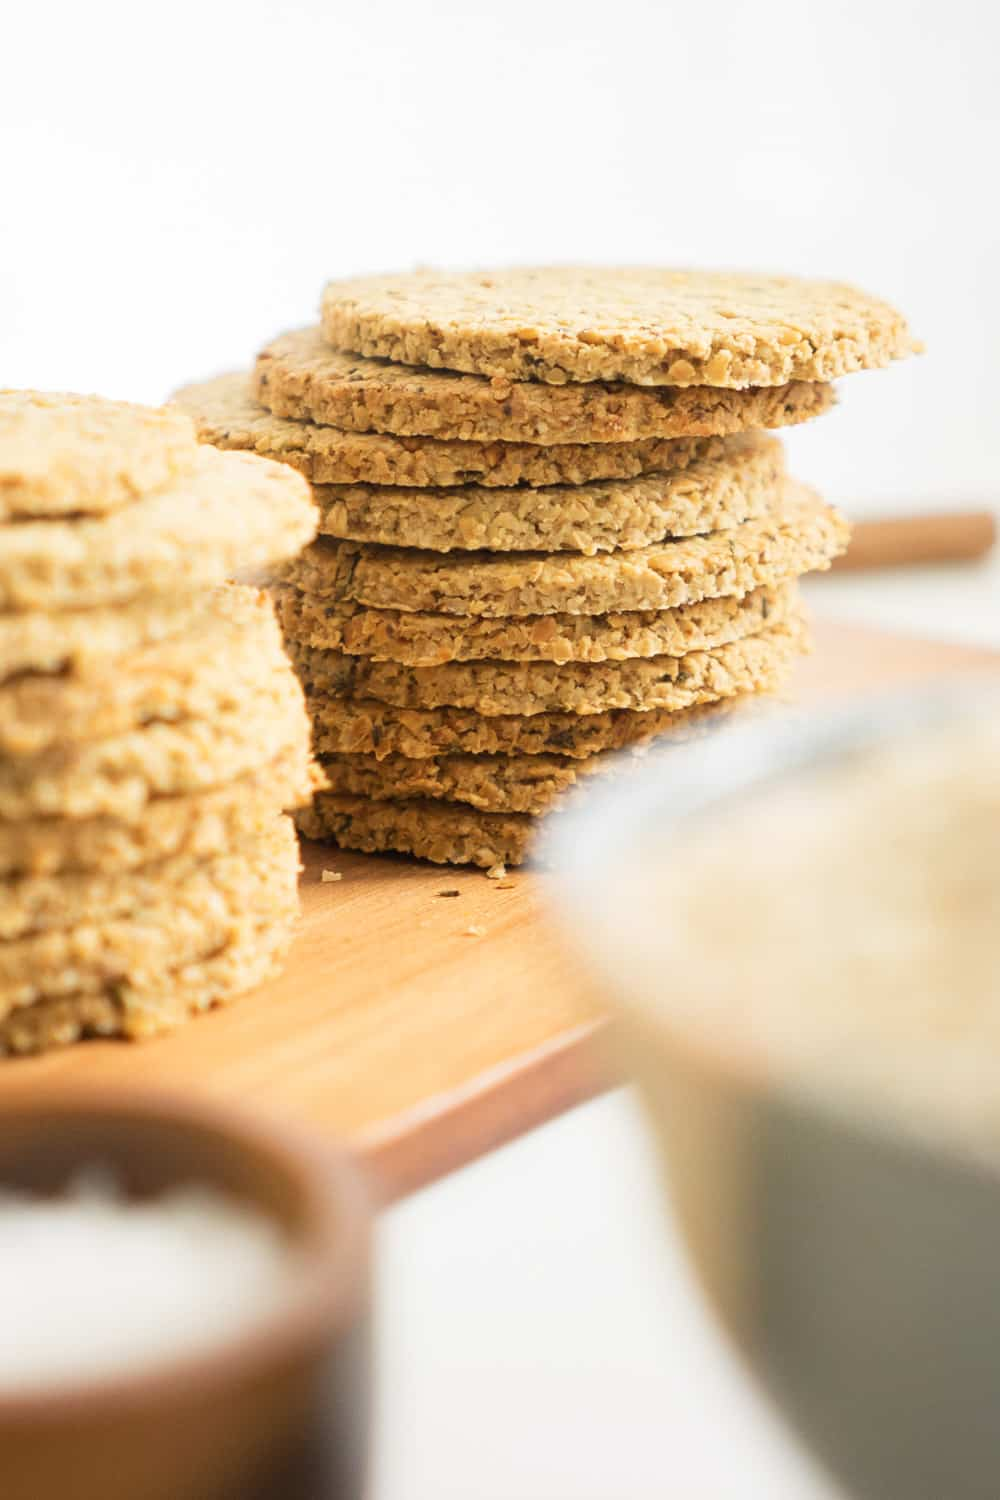 A homemade healthy oatcakes recipe that makes the perfect everyday snack: with 5 simple ingredients these oatcakes are so easy to make! And you won't be able to stop eating them!